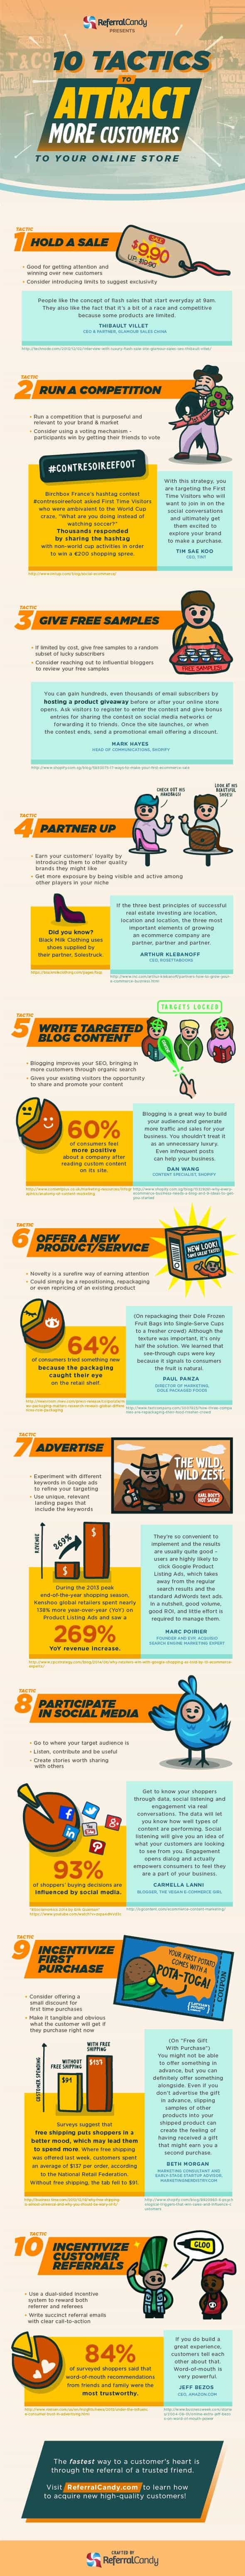 attract more customers infographic